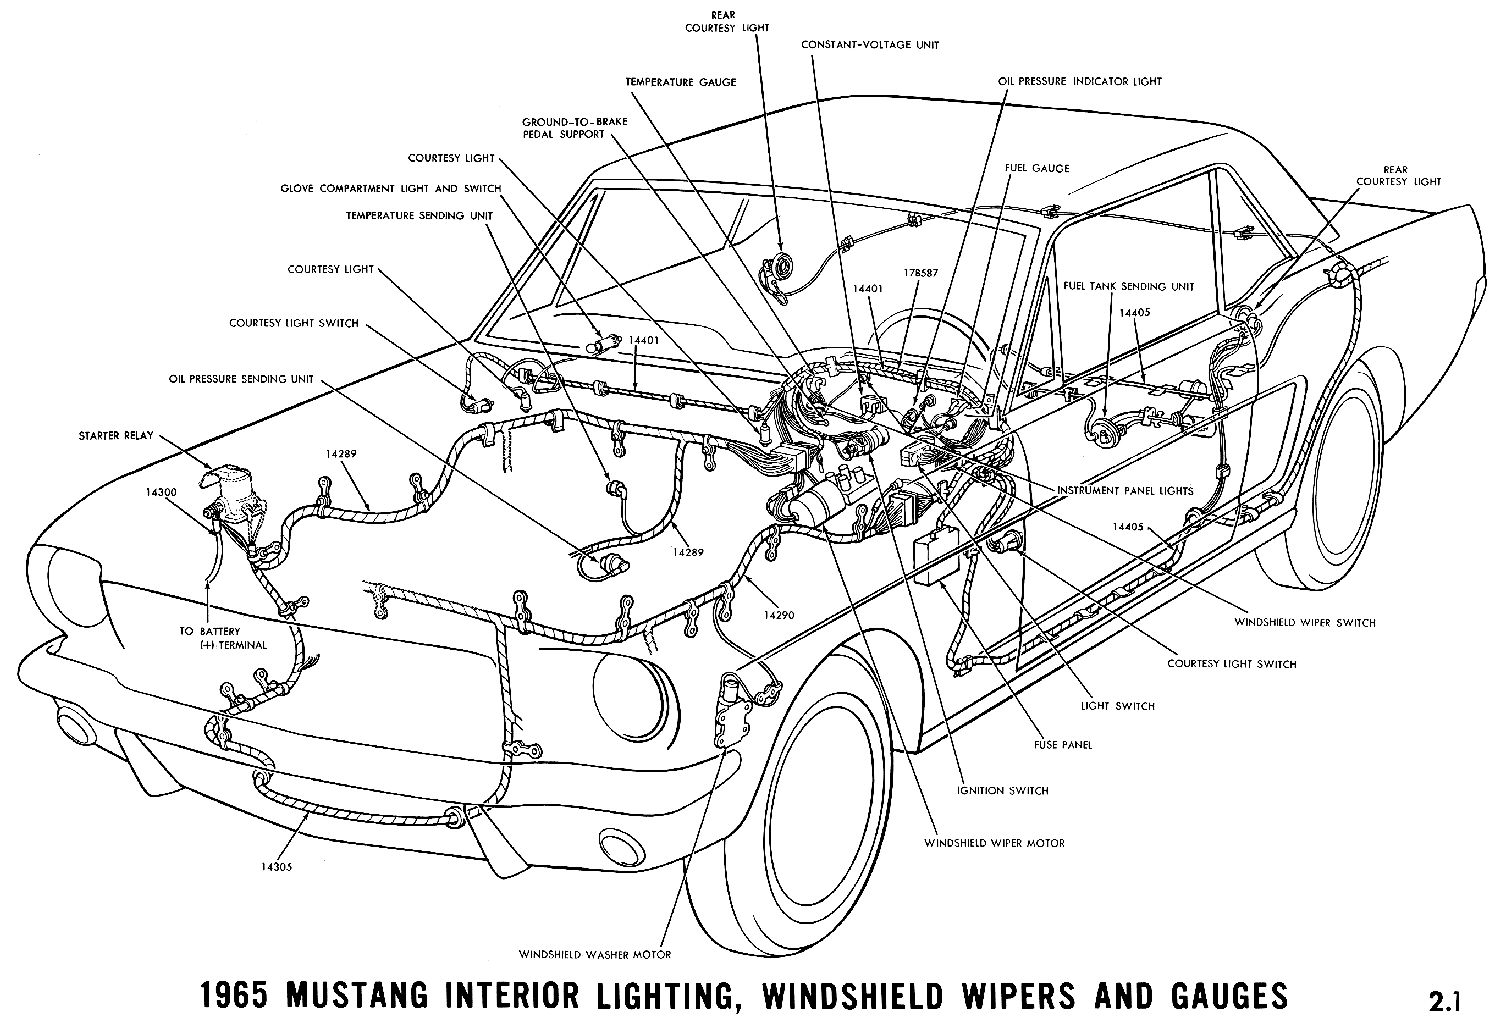 1965 Mustang Backup Light Switch Wiring - Wiring Diagram Features on 1969 c10 transmission, 1969 c10 engine, 1969 c10 specs, 1969 c10 chassis, 1969 c10 lights, 1969 c10 exhaust, 1969 c10 parts, 1969 c10 show truck, 1969 c10 schematics,